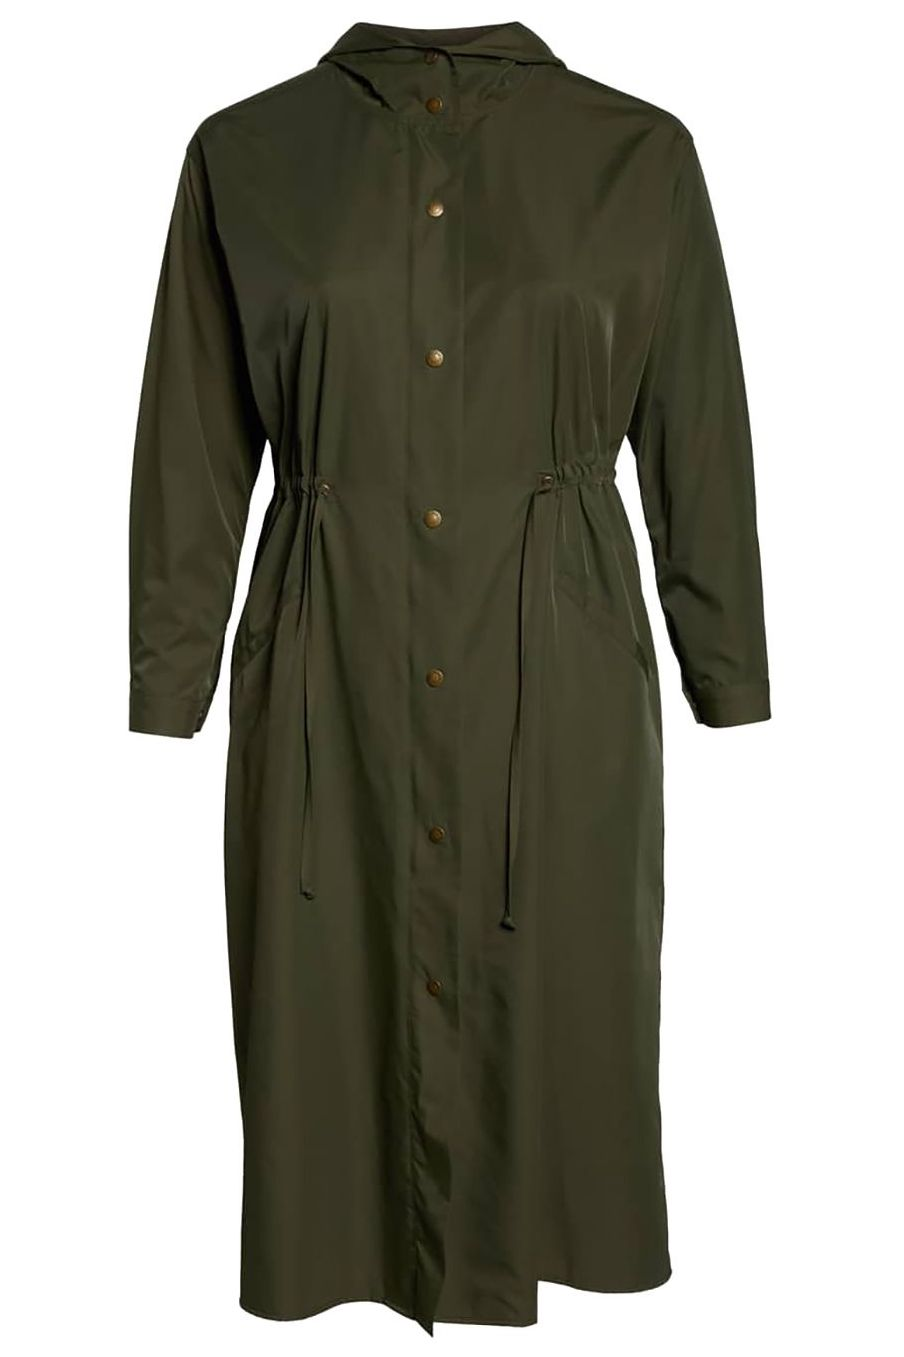 Waterproof Wonder Vince Camuto Nordstrom $164.00 SHOP IT Spring = rain showers. This waterproof jacket comes equipped with a hood and a flattering silhouette that will convince you to pull it out of the closet even when it's not pouring.